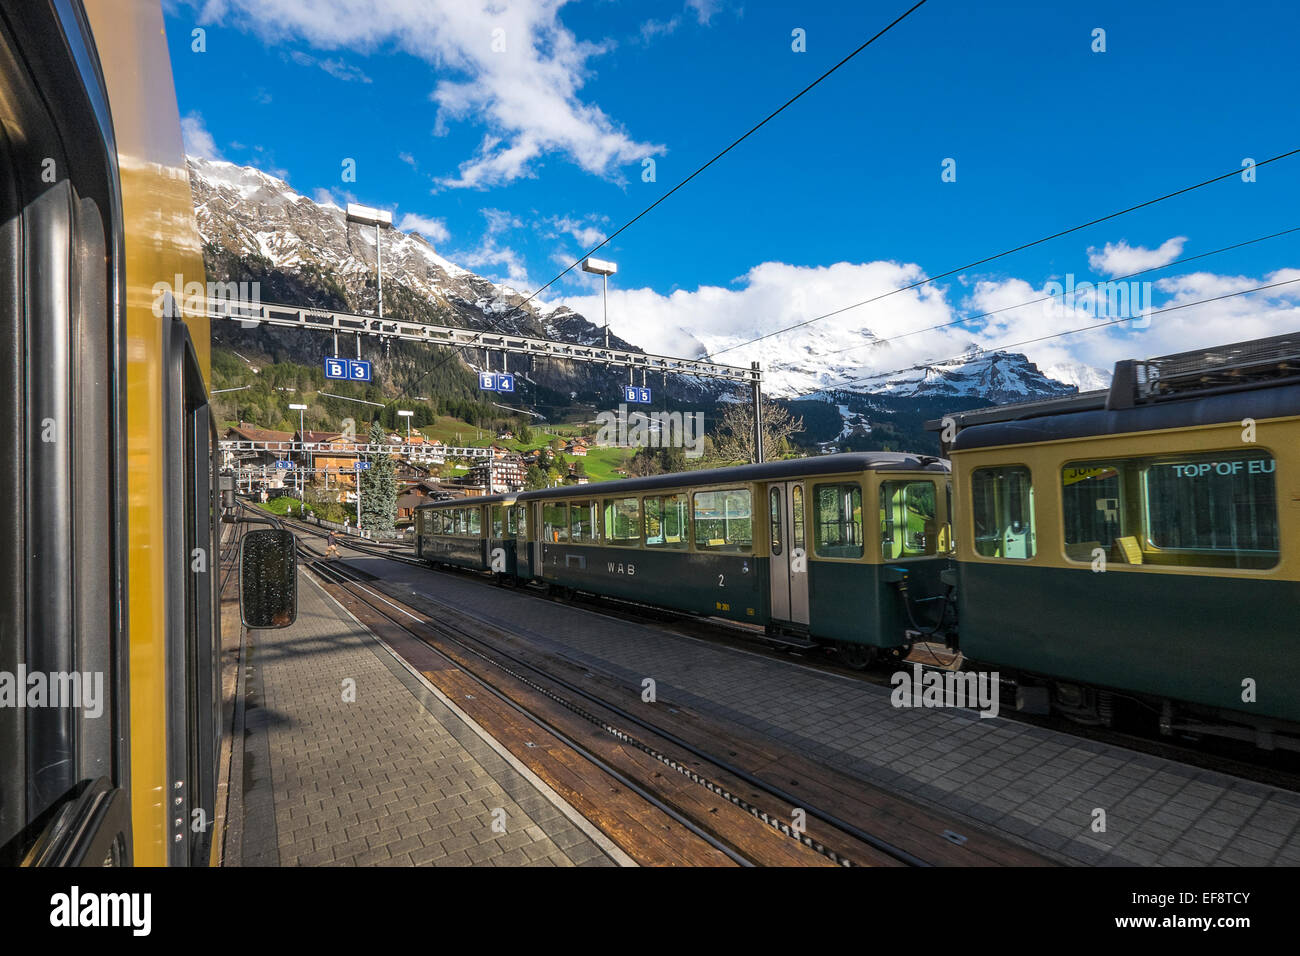 Switzerland, Jungfrau Region, Mountain train at railroad station - Stock Image